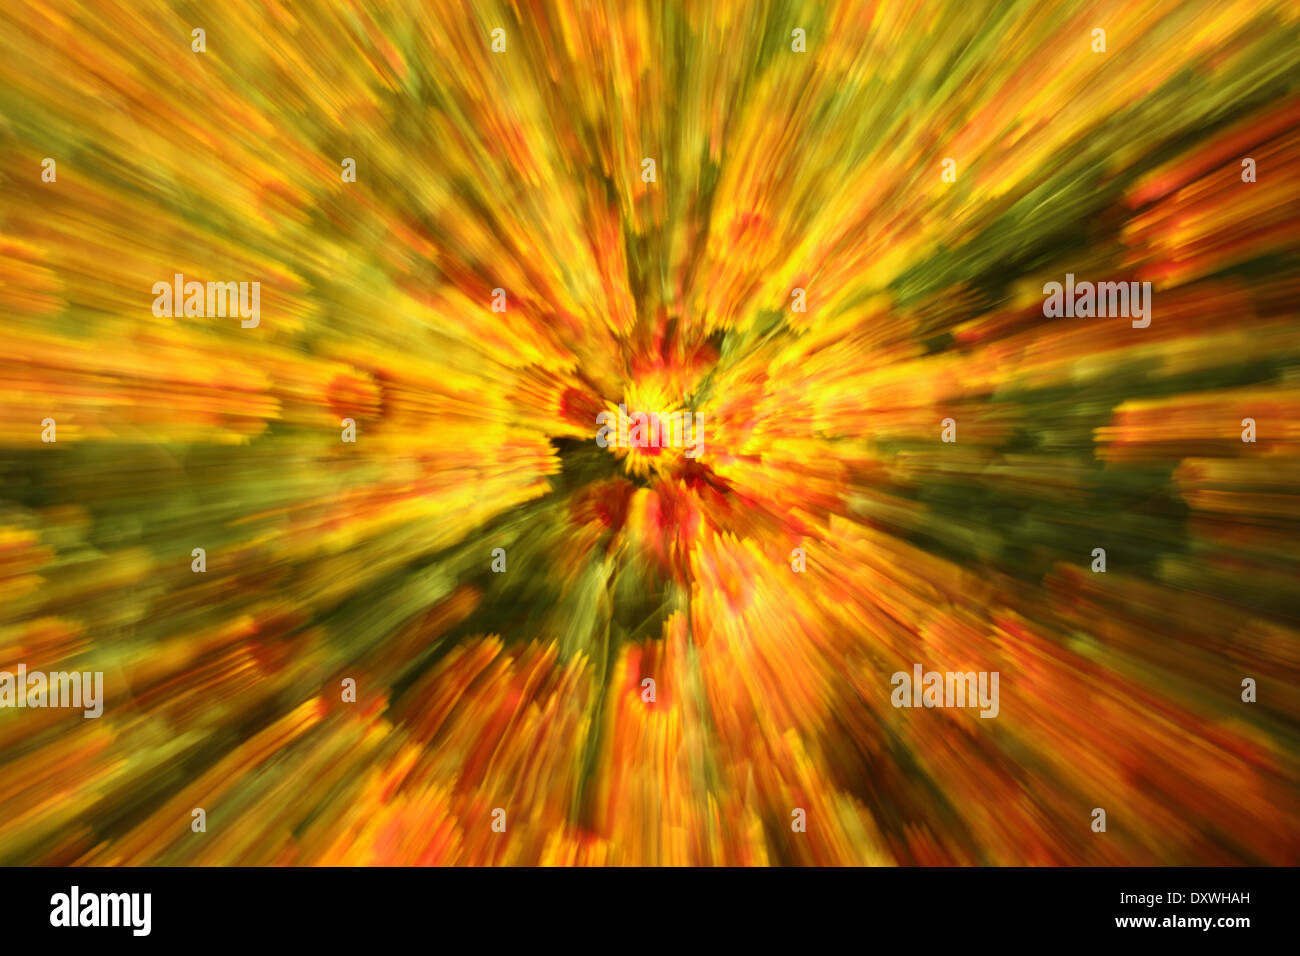 A zoom-blur of spring wildflowers - psychedelic. - Stock Image